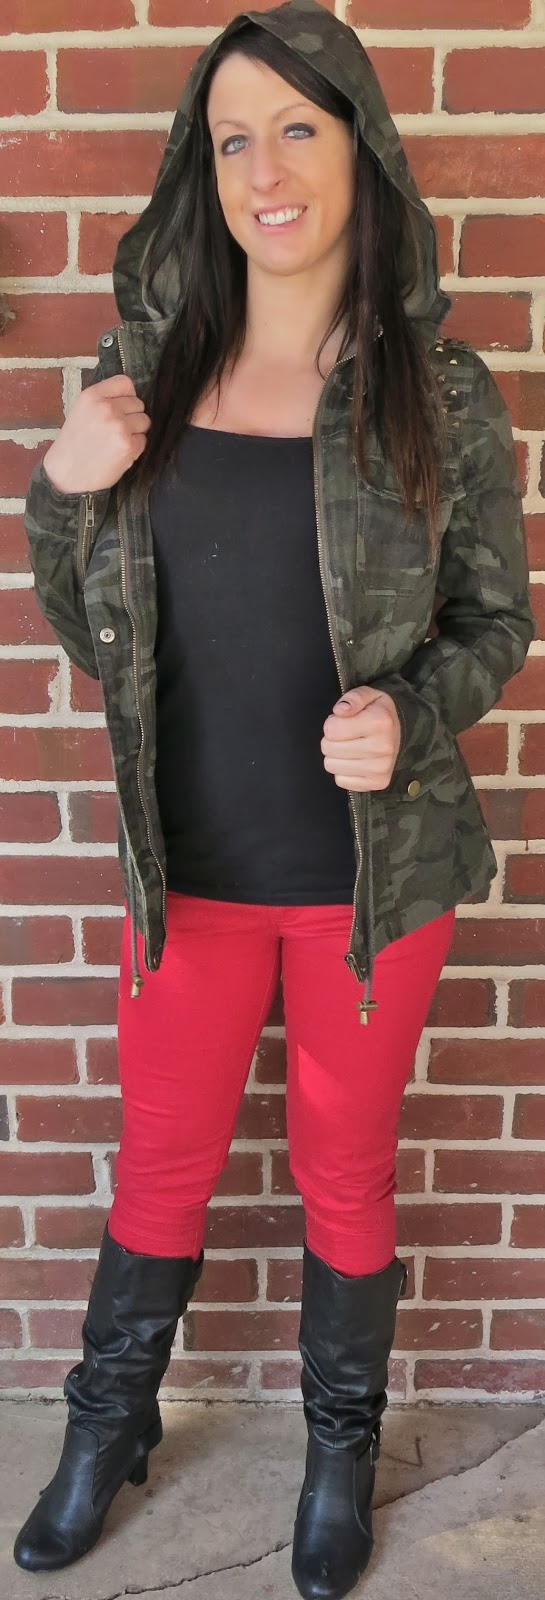 annie jean apparel, camo, Fashion, ootd, Outfit Ideas, outfit of the day, Outfits, red pants